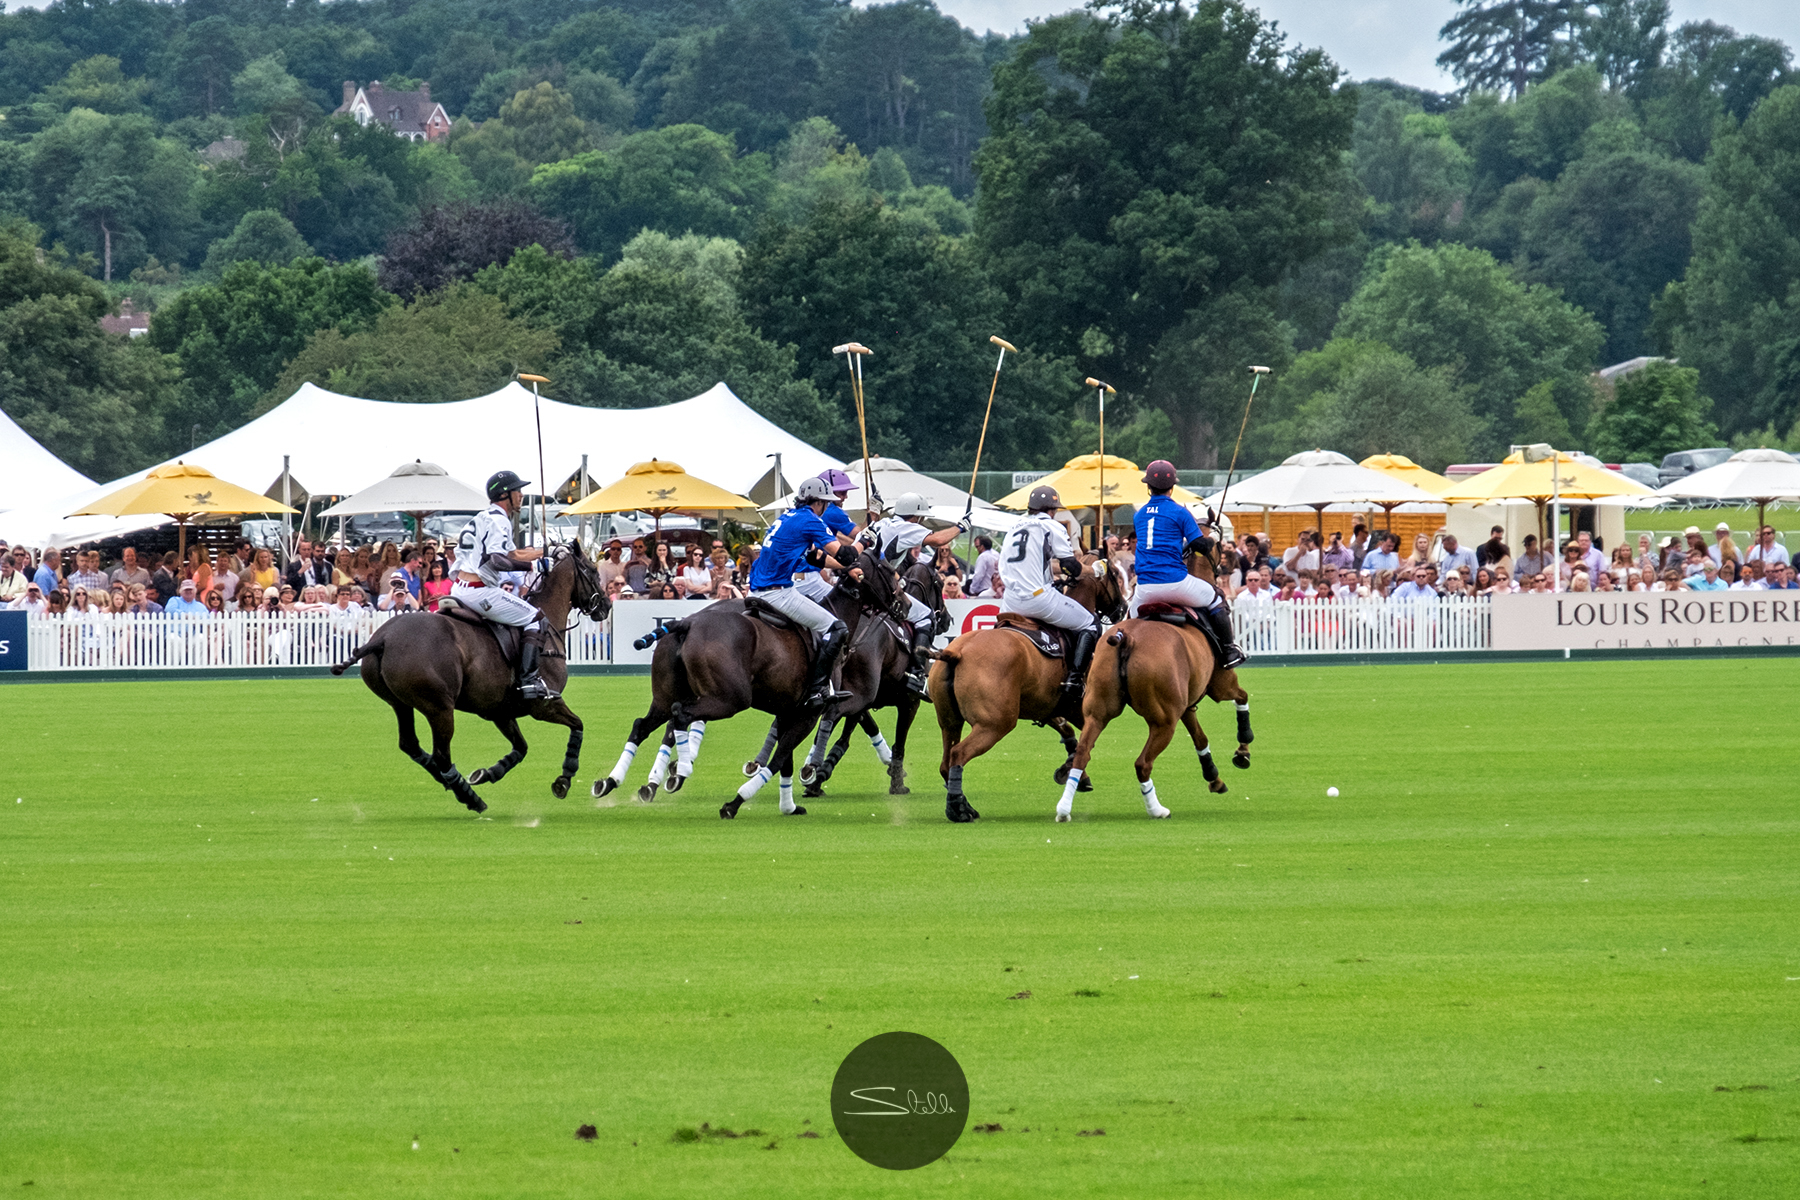 Stella Scordellis Jaeger-LeCoultre Gold Cup 2016 19 Watermarked.jpg